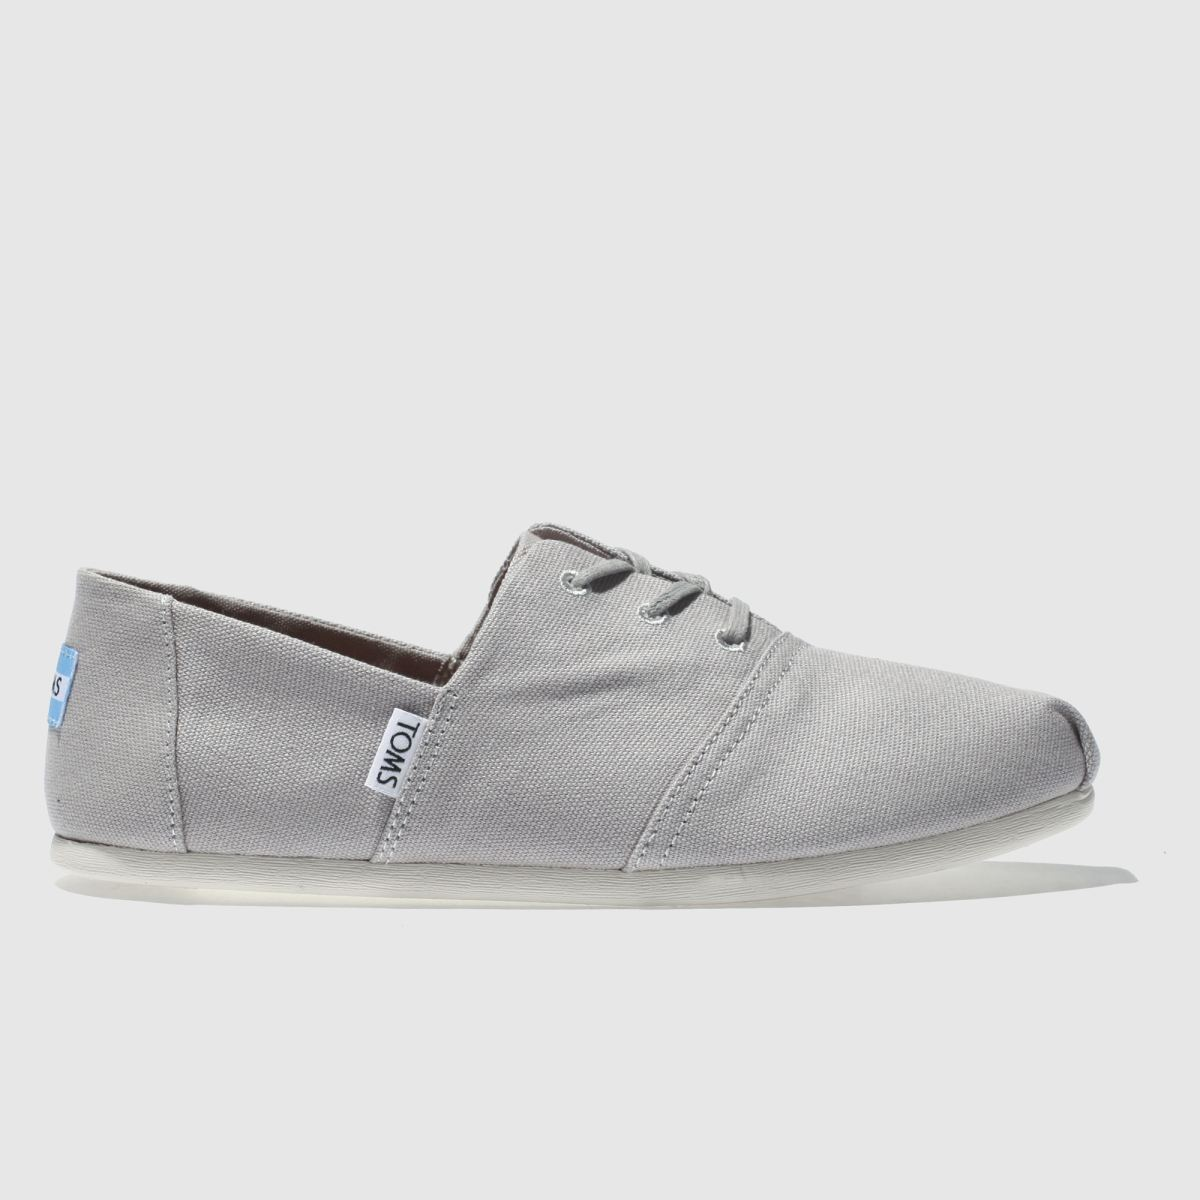 Toms Light Grey Hermosa Flat Shoes